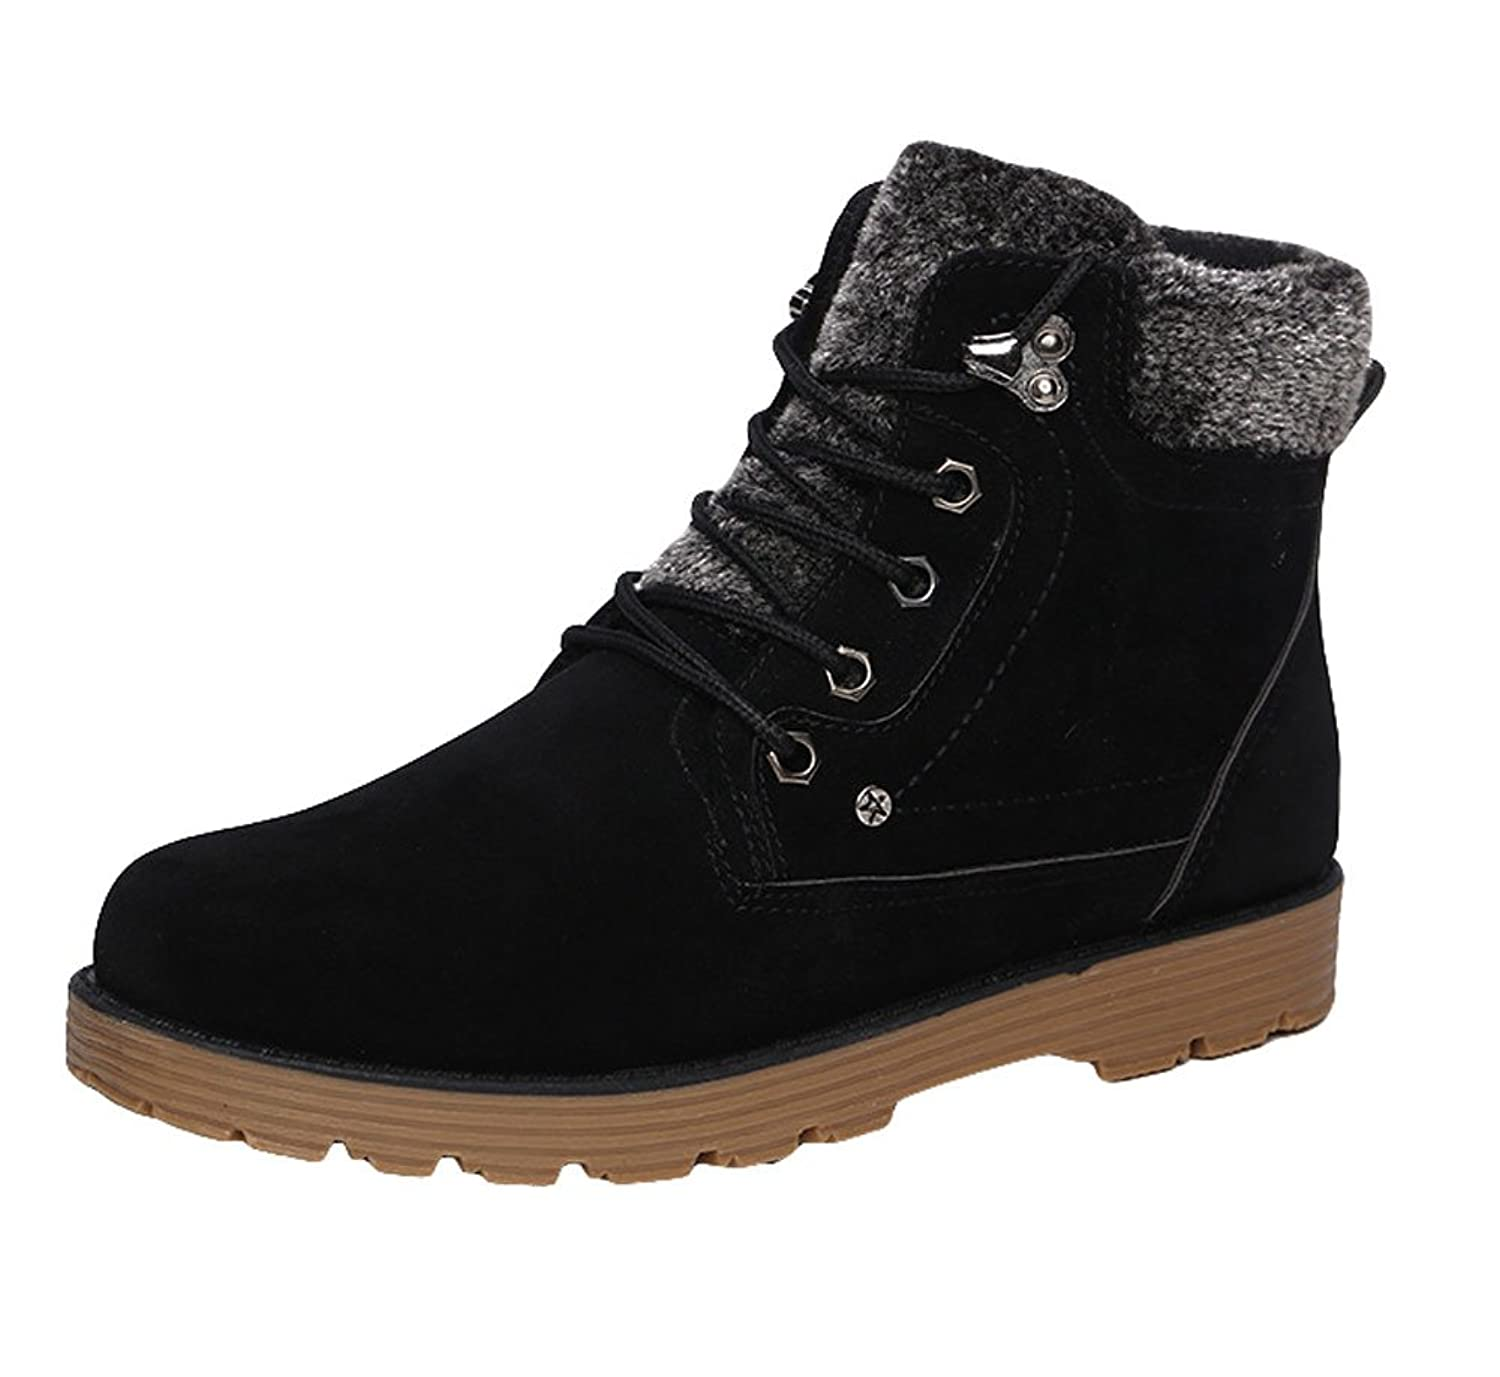 King Ma Mens Thicken Faux Fur Lace-up Cotton Boots Snow Boots